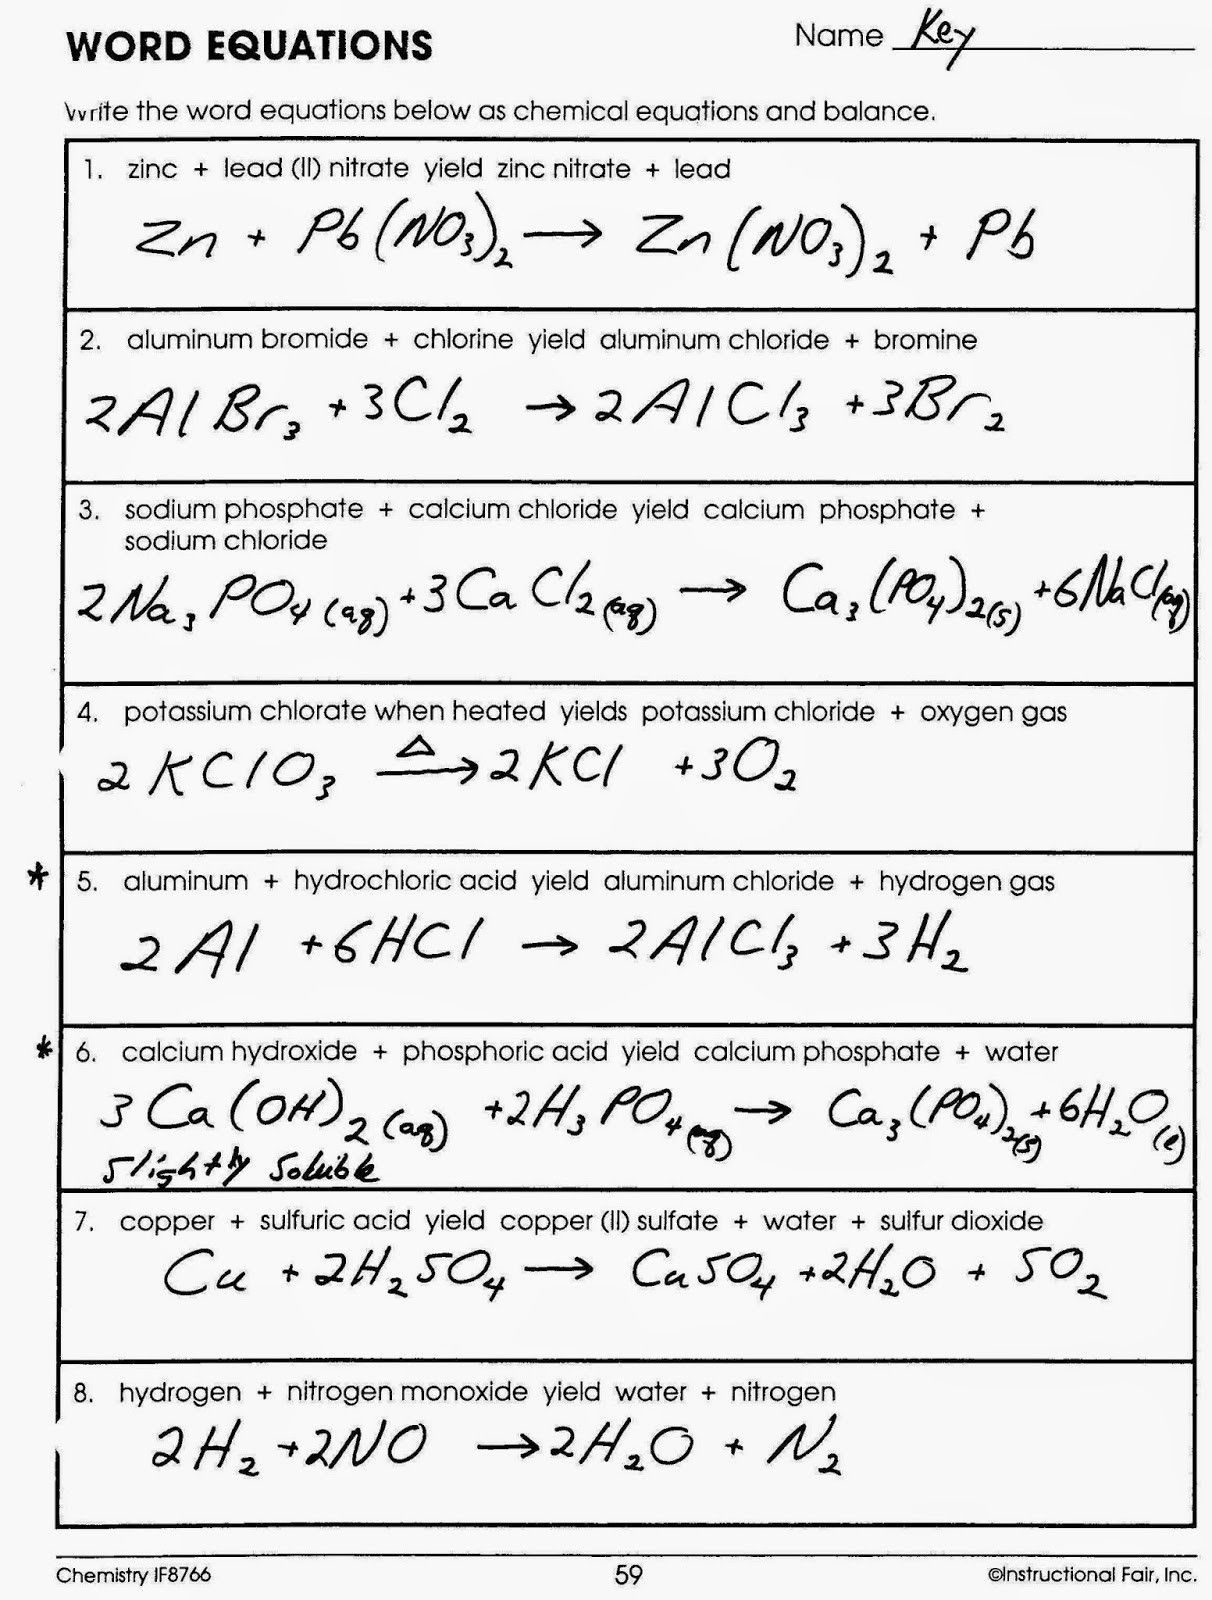 Word Equations Chemistry Worksheet